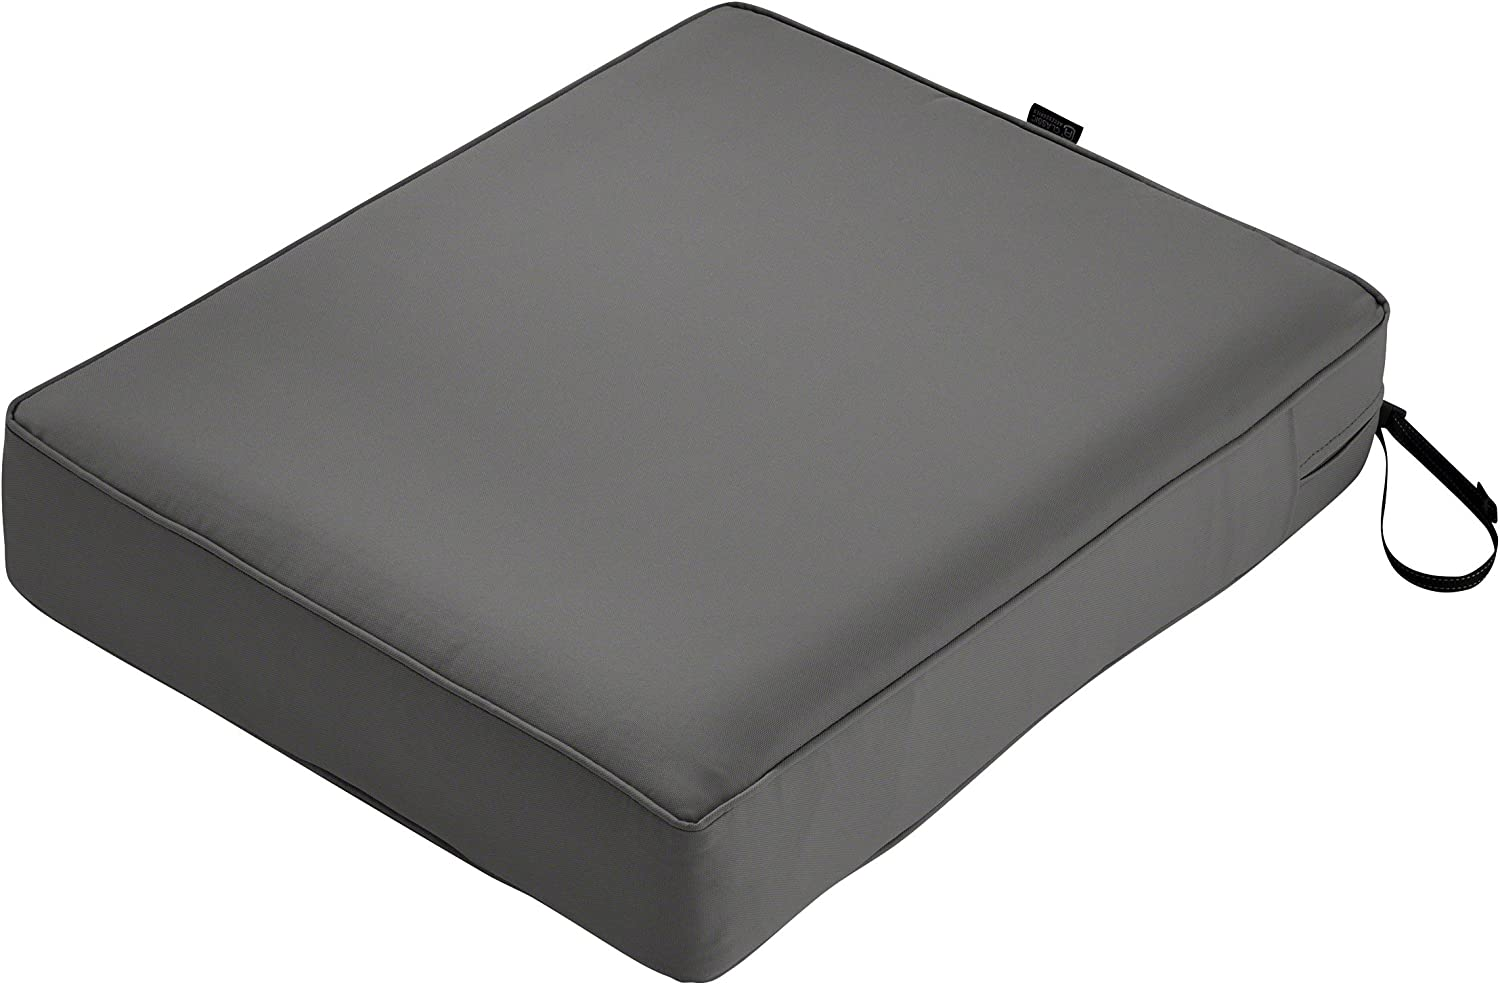 Classic Accessories Montlake Water-Resistant 21 x 25 x 5 Inch Rectangle Outdoor Seat Cushion, Patio Furniture Chair Cushion, Light Charcoal Grey